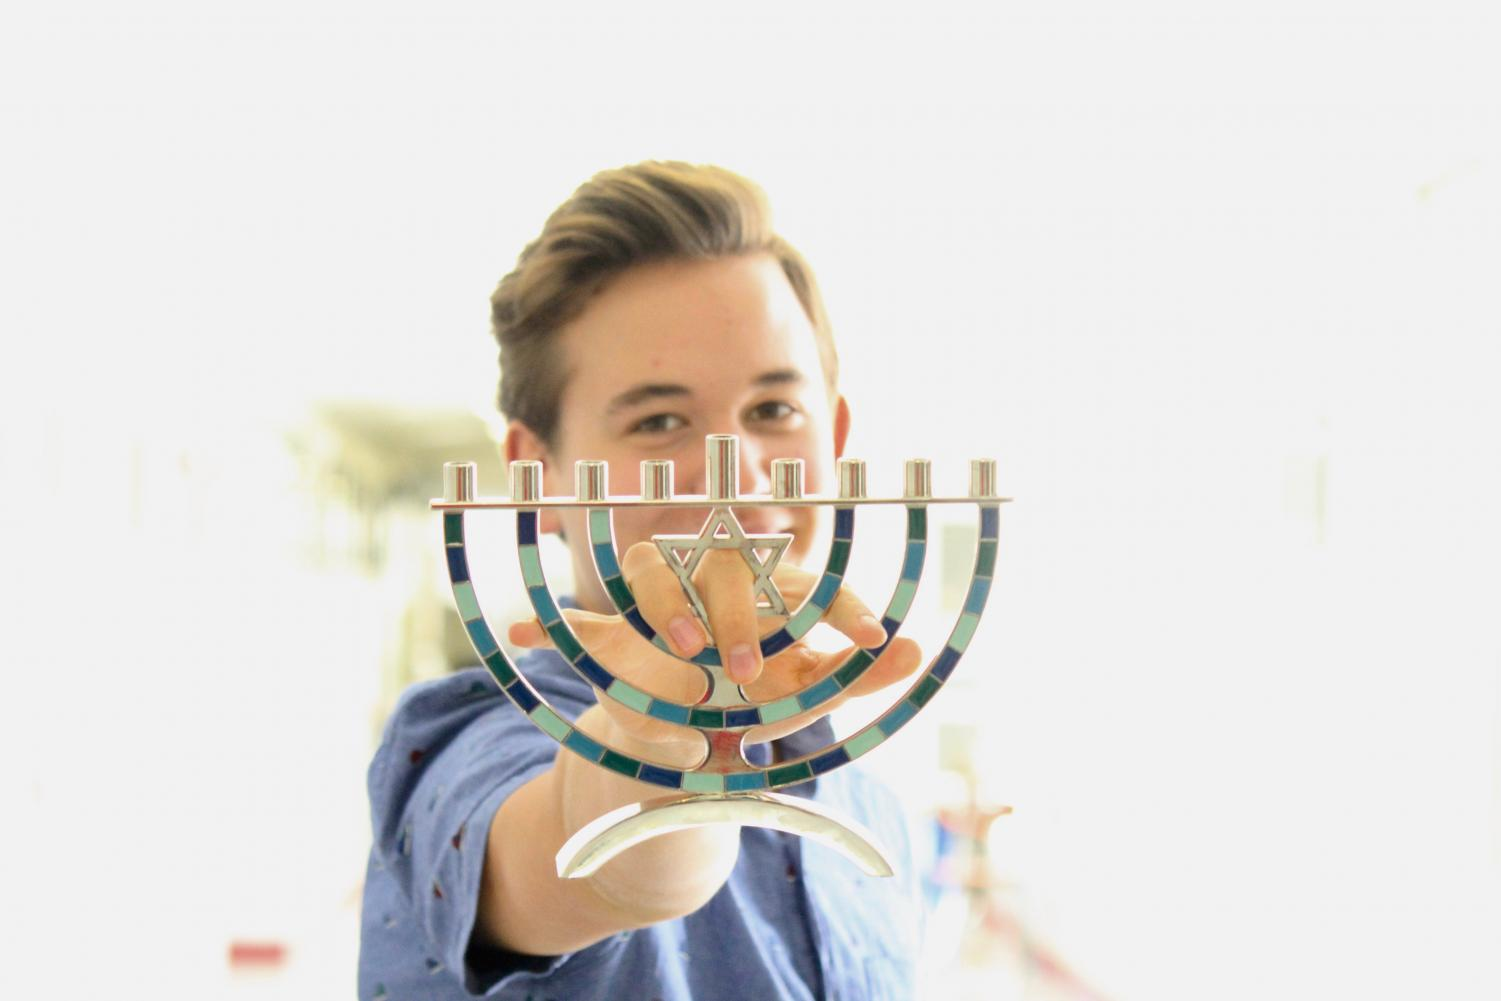 Noah Bridges eloquently clutches a menorah, which appears to be made of bathroom tile.